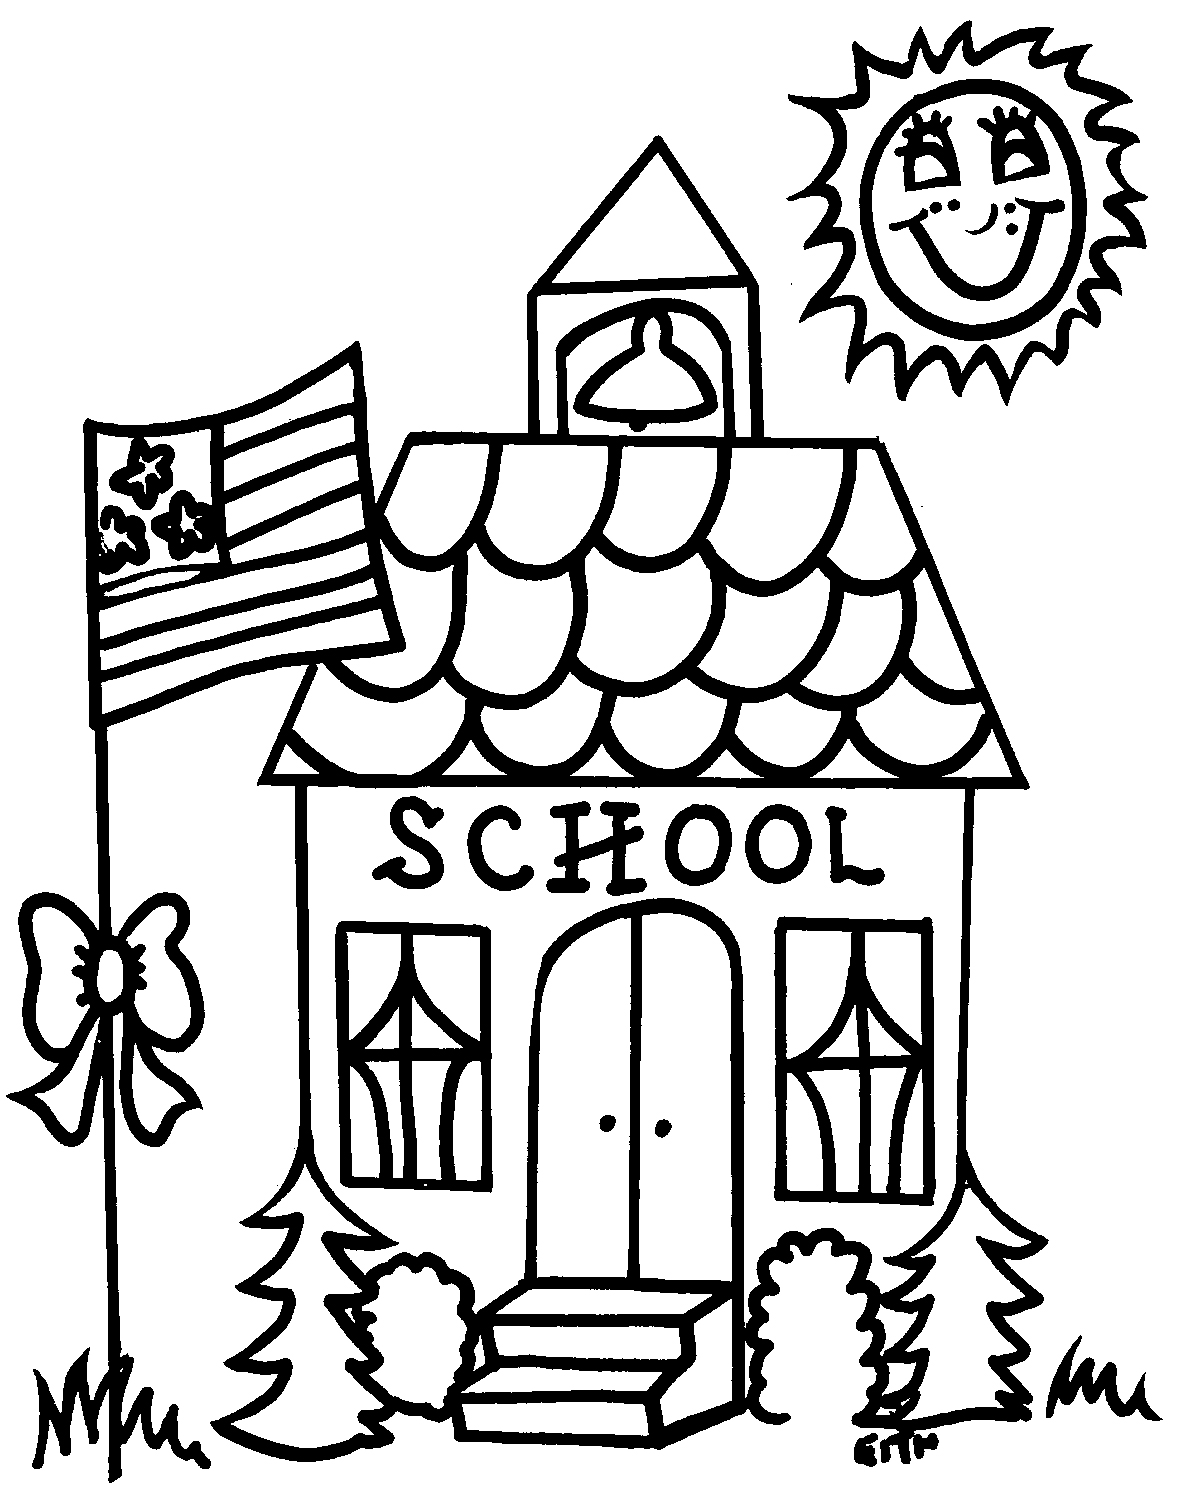 school open house coloring pages - photo#12